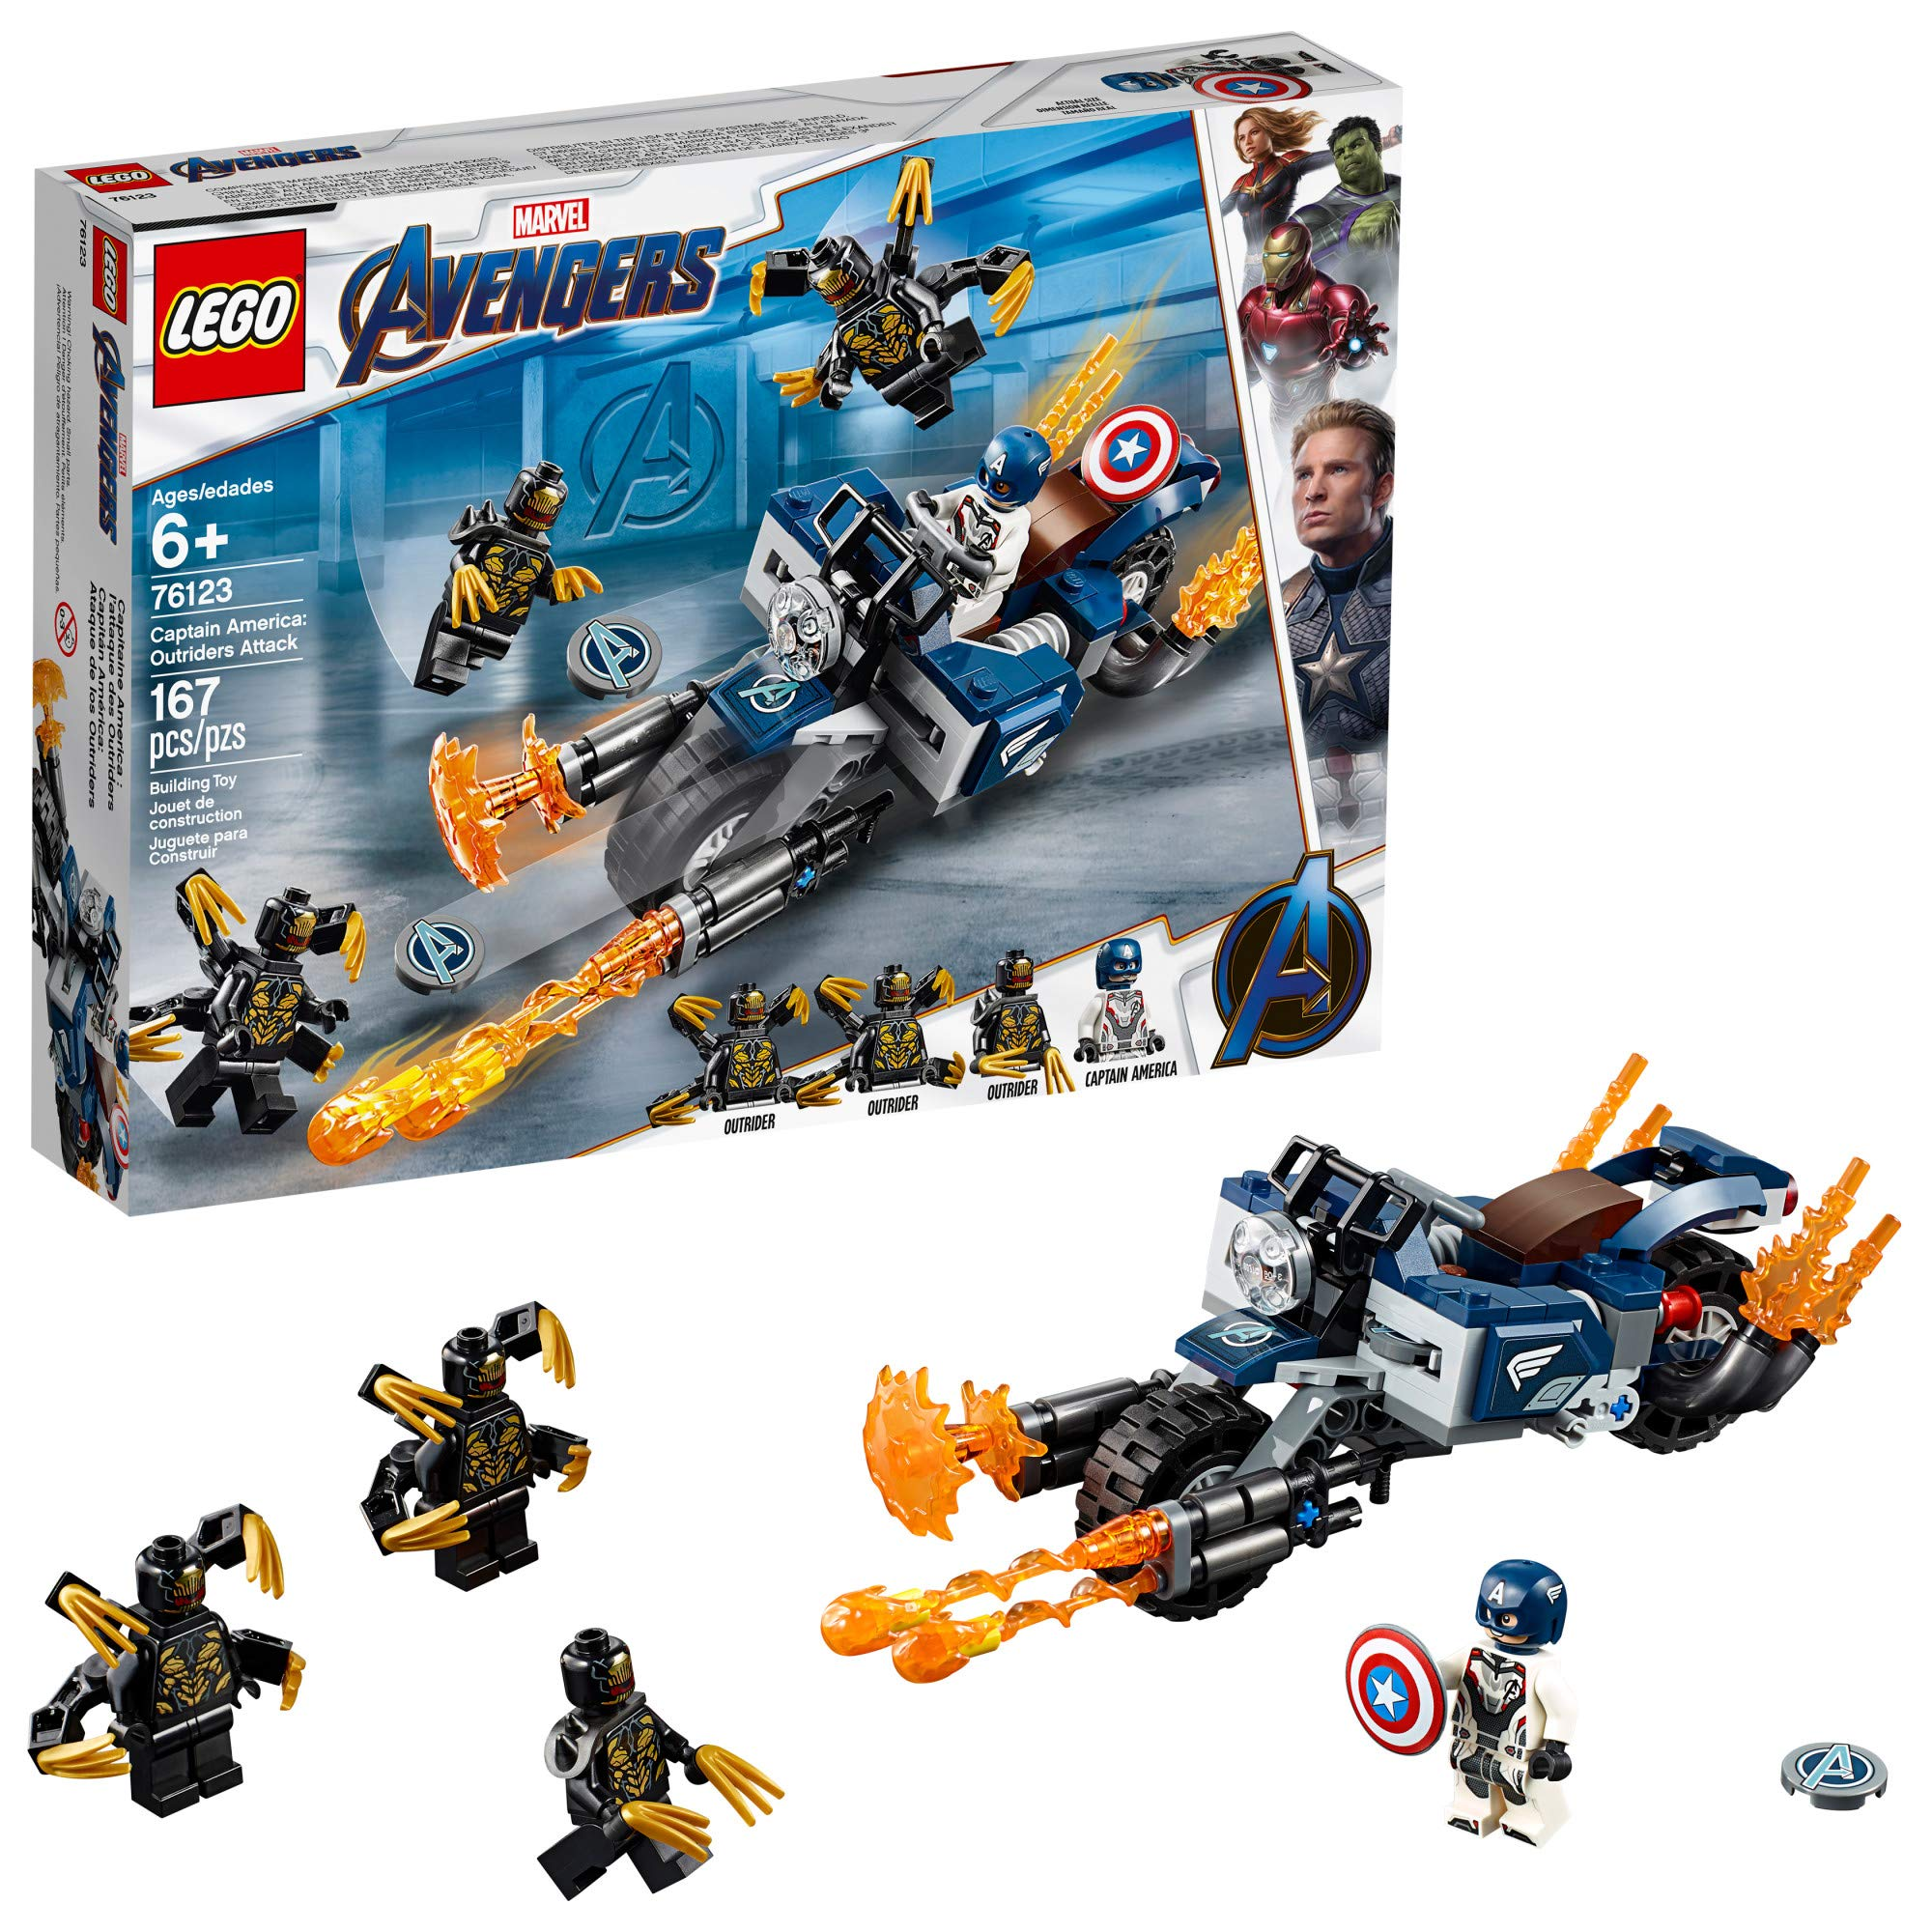 LEGO Marvel Avengers Captain America: Outriders Attack 76123 Building Kit, New 2019 (167 Pieces) by LEGO